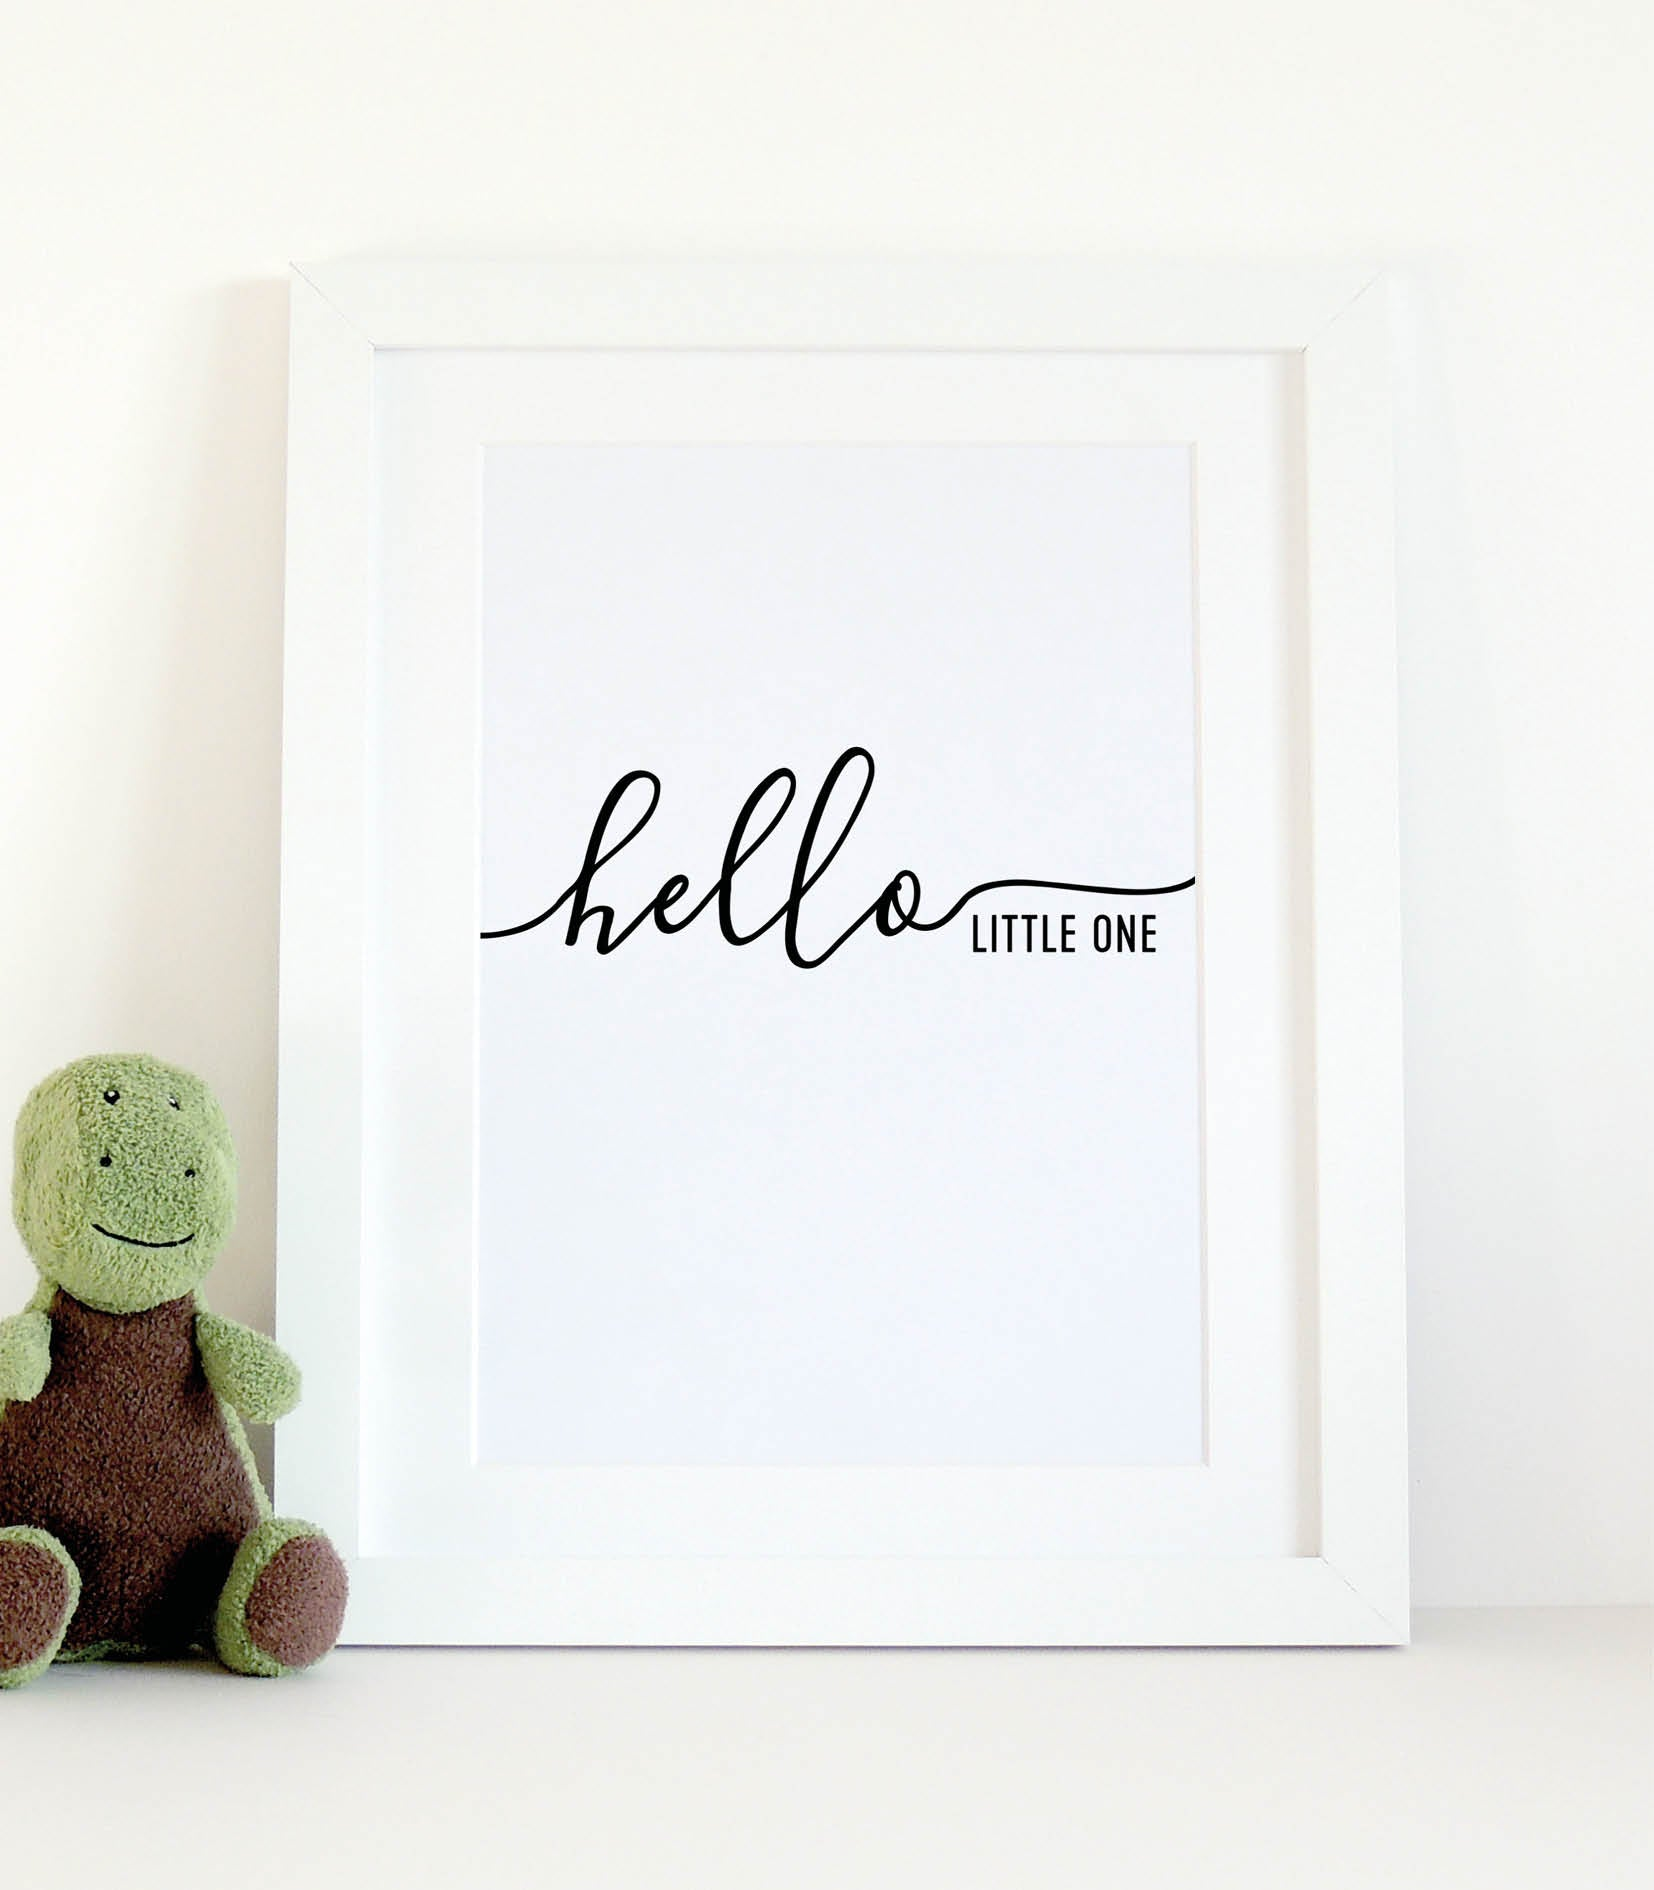 'Hello little one' typographical print